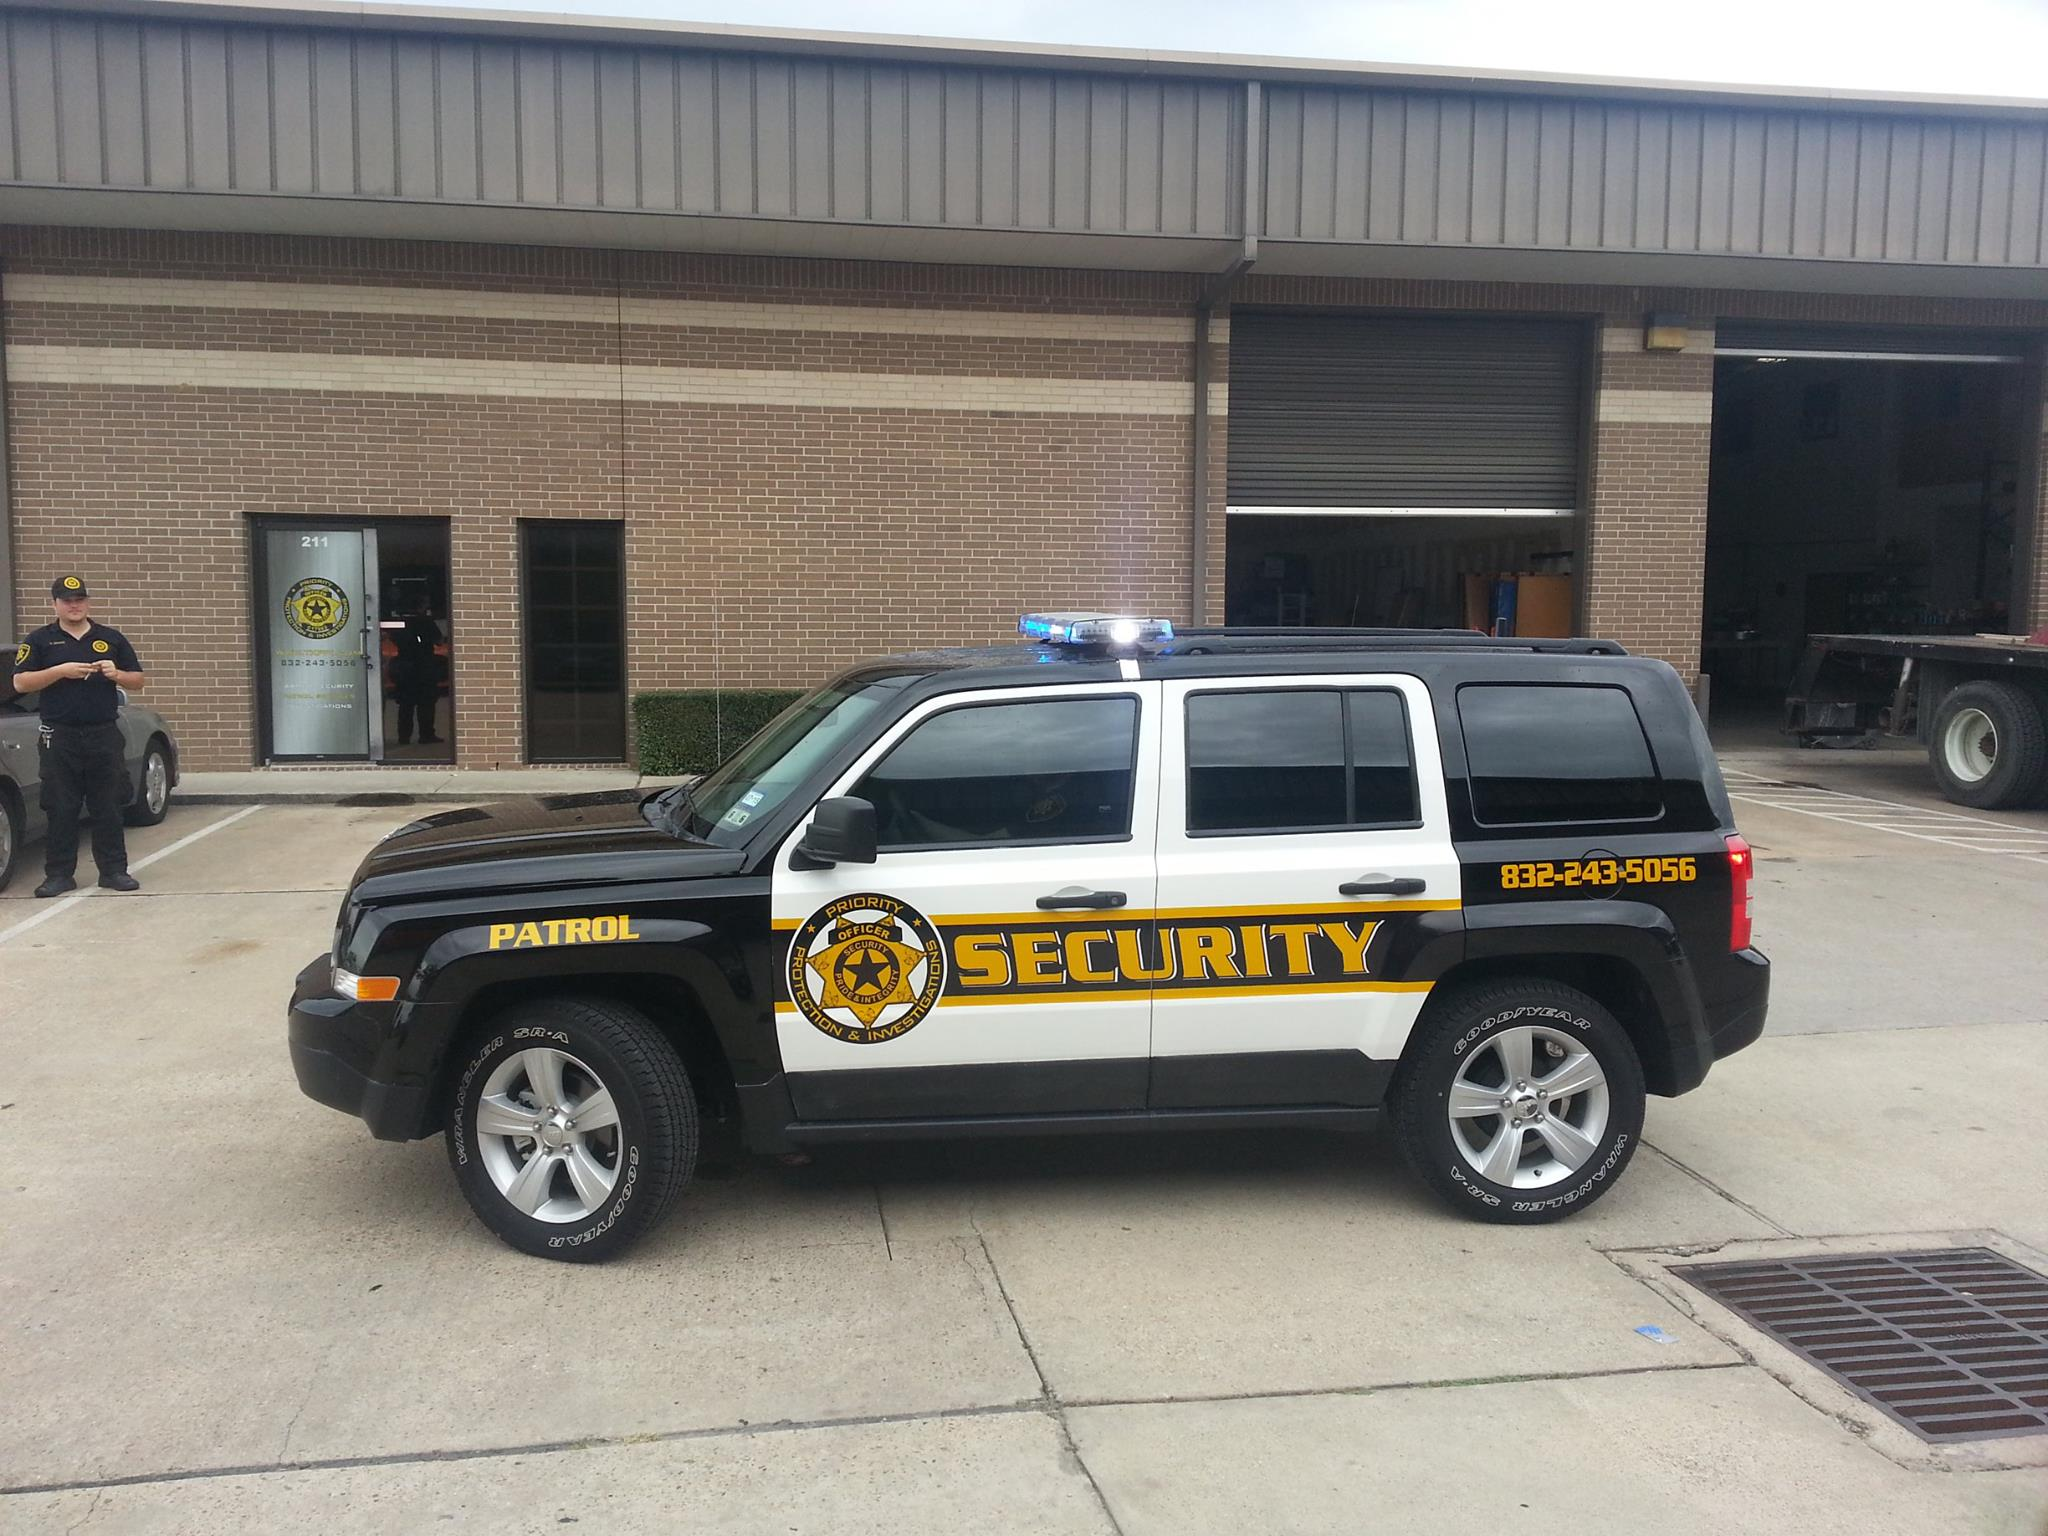 Security_Patrol_Vehicle_Texas.jpg